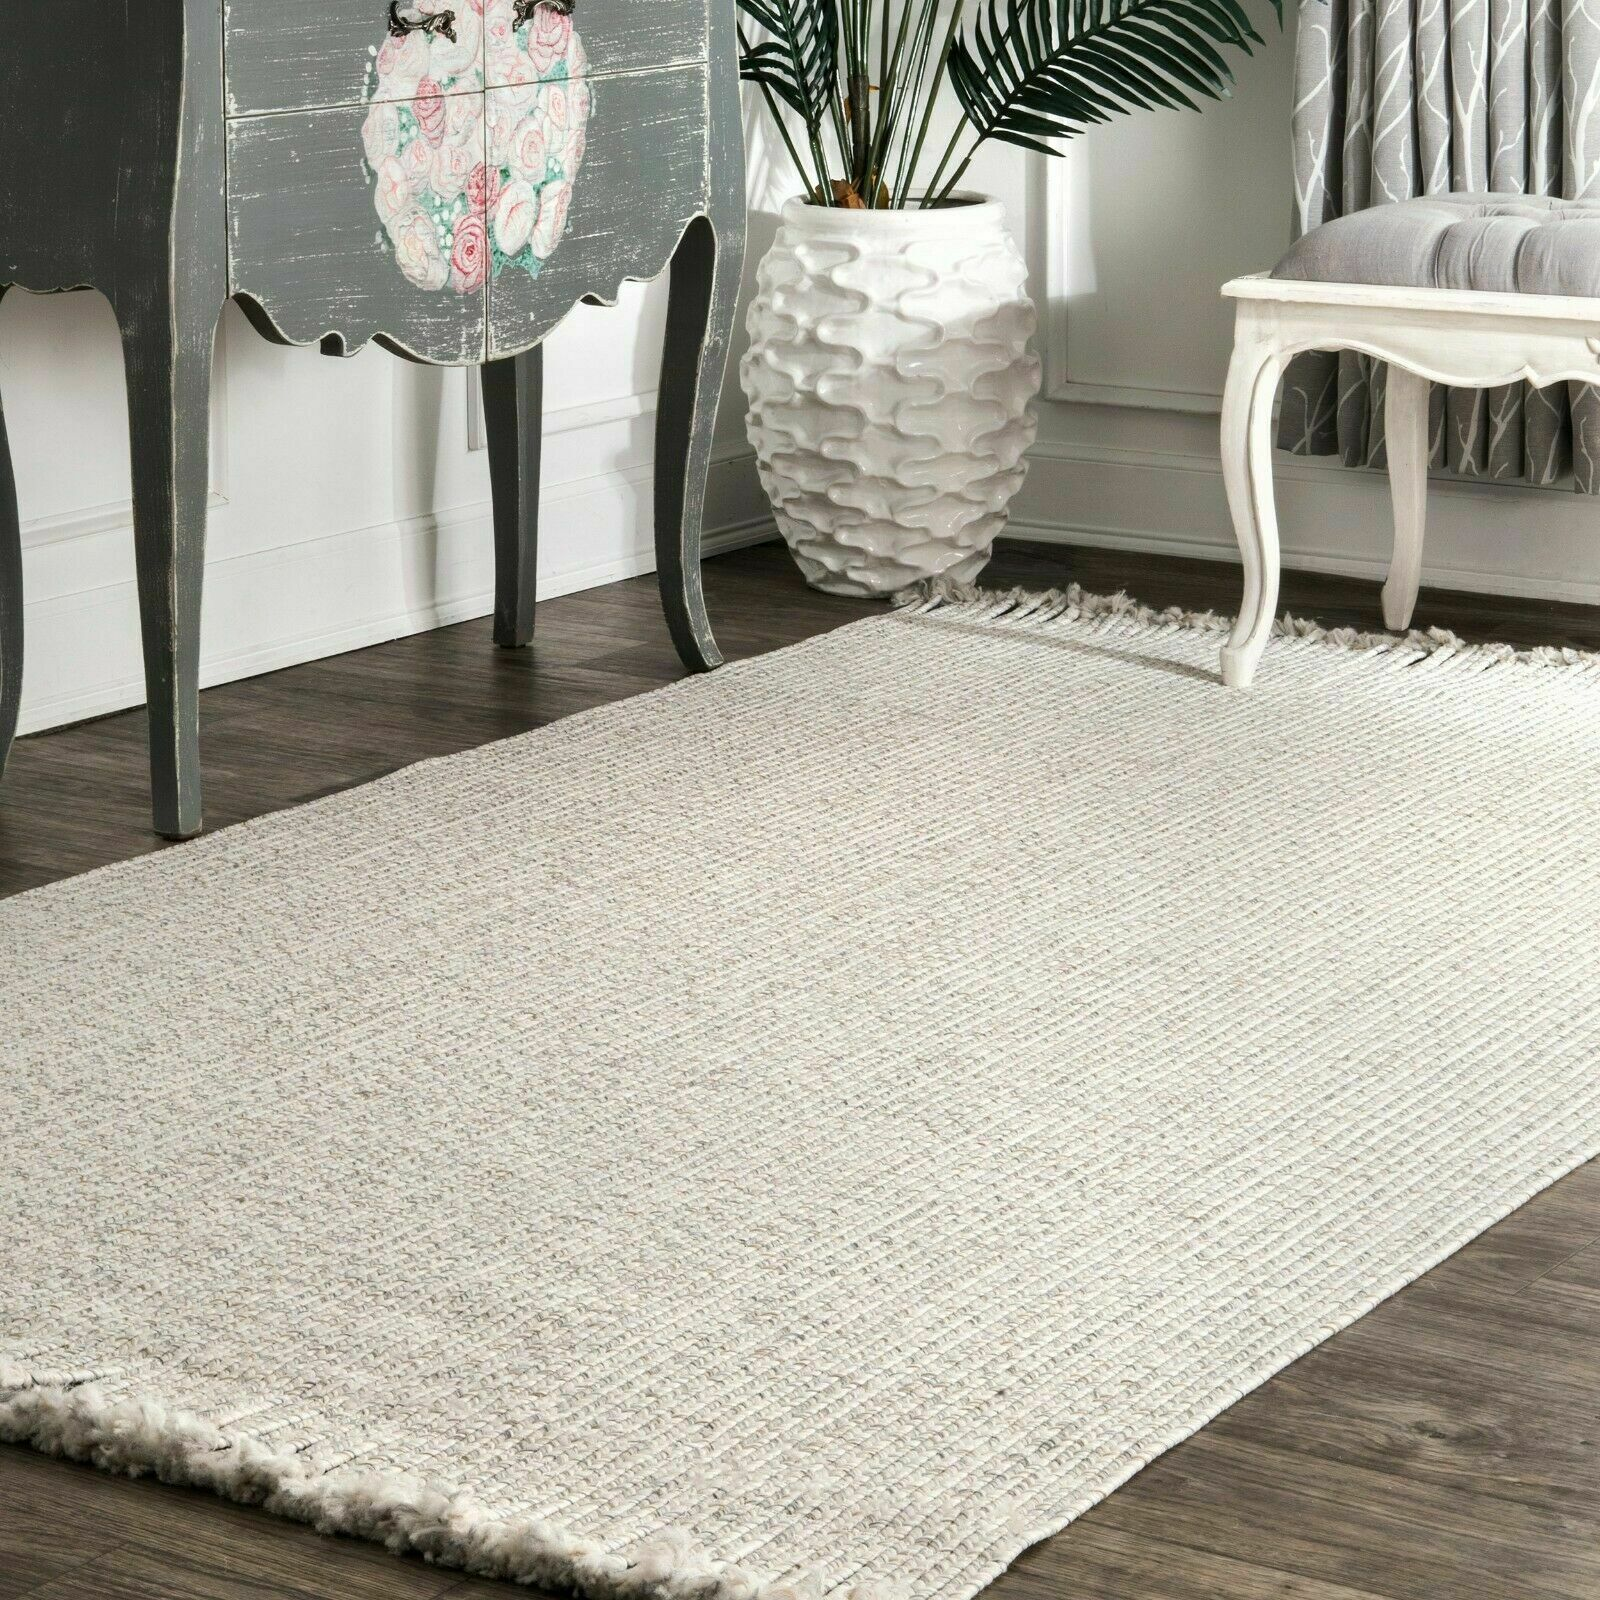 Park B Smith Chindi Solid Rug 4 9 X 7 11 For Sale Online Ebay